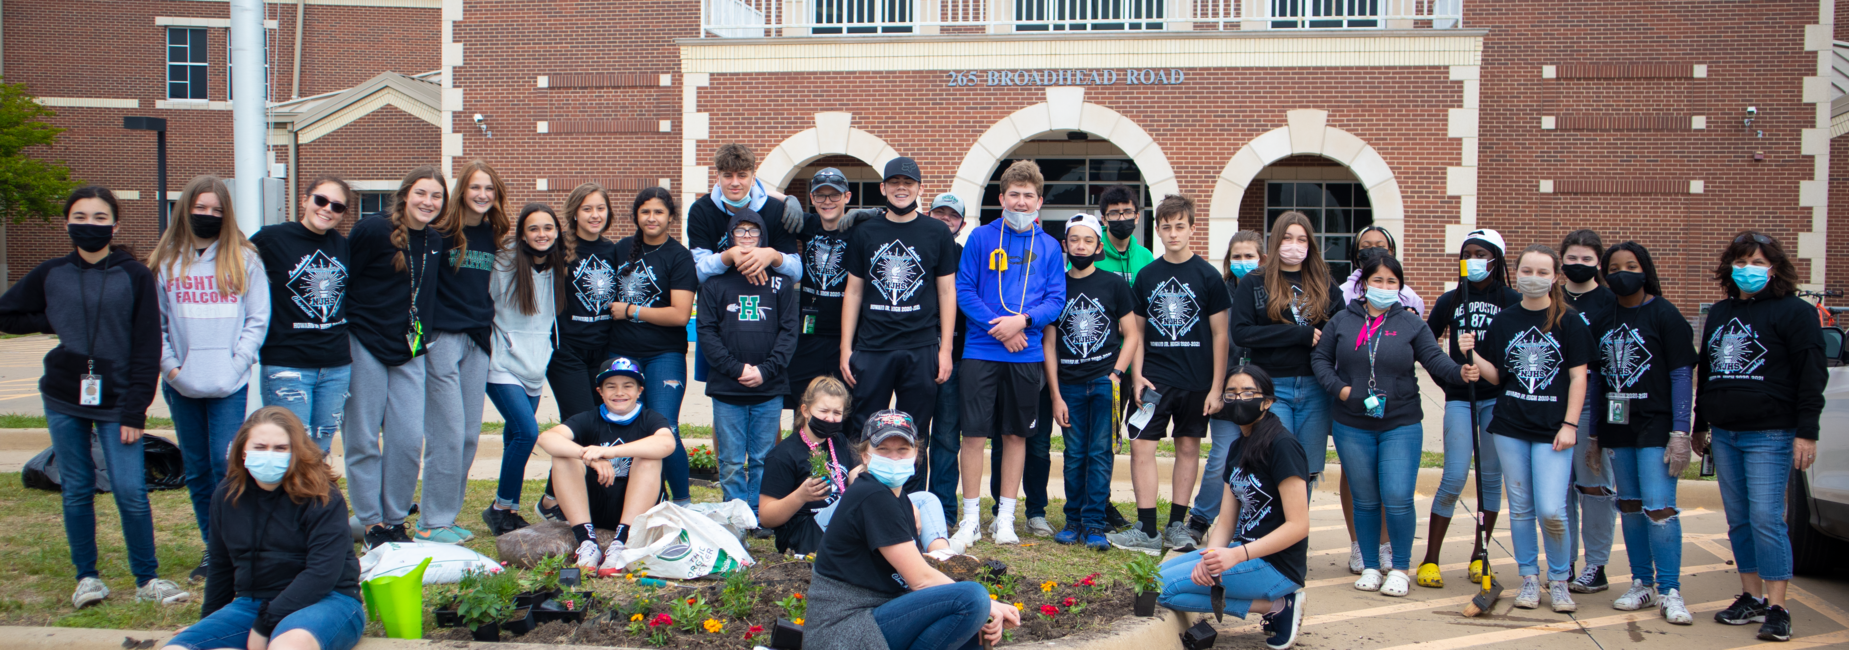 large group of teens outside of campus after planting spring flowers